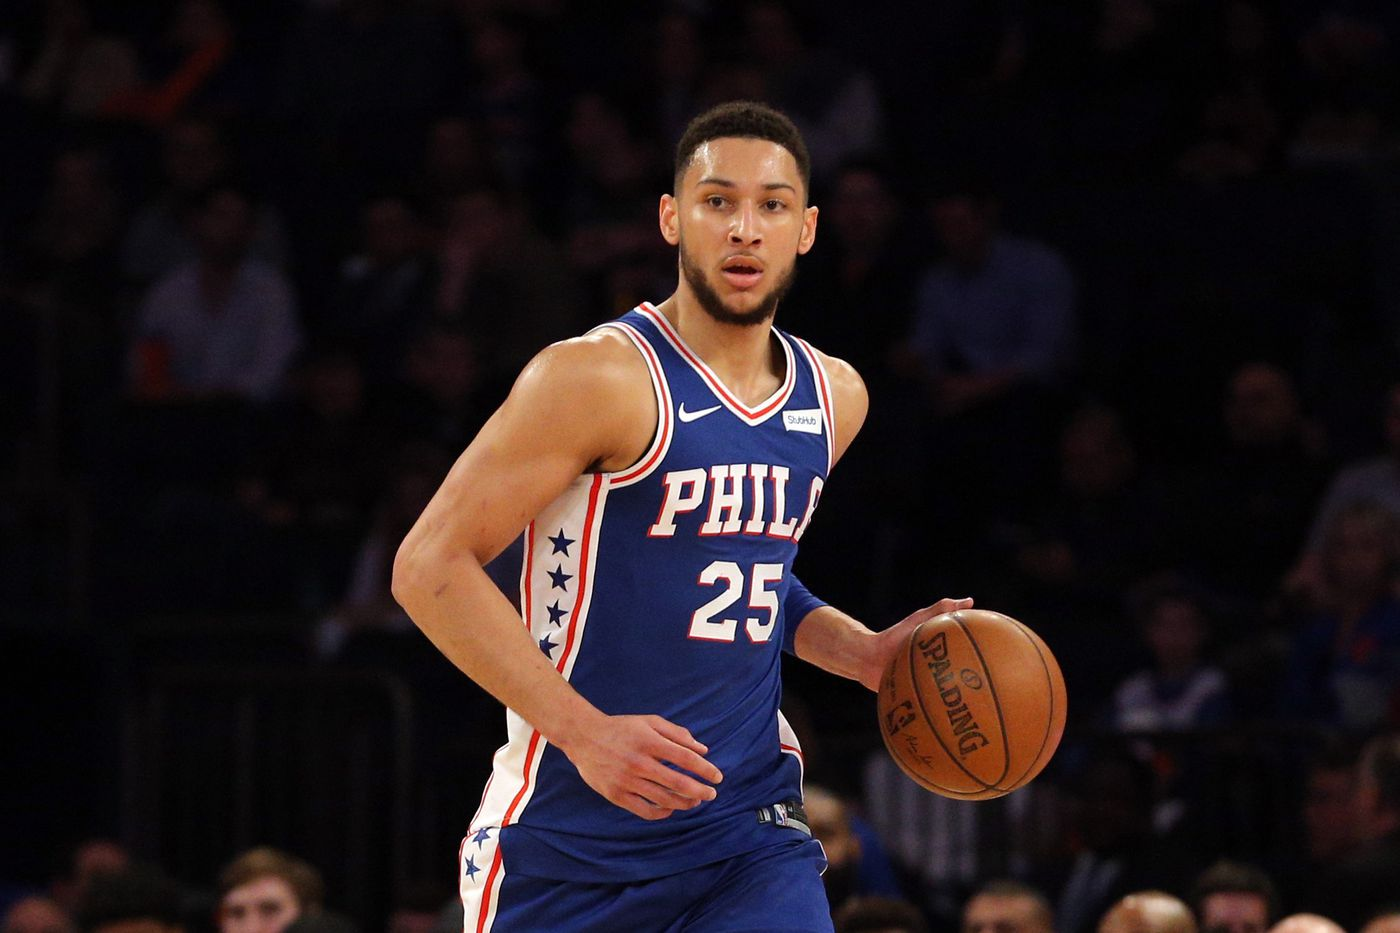 Ben Simmons passed Magic Johnson's rookie triple-double total